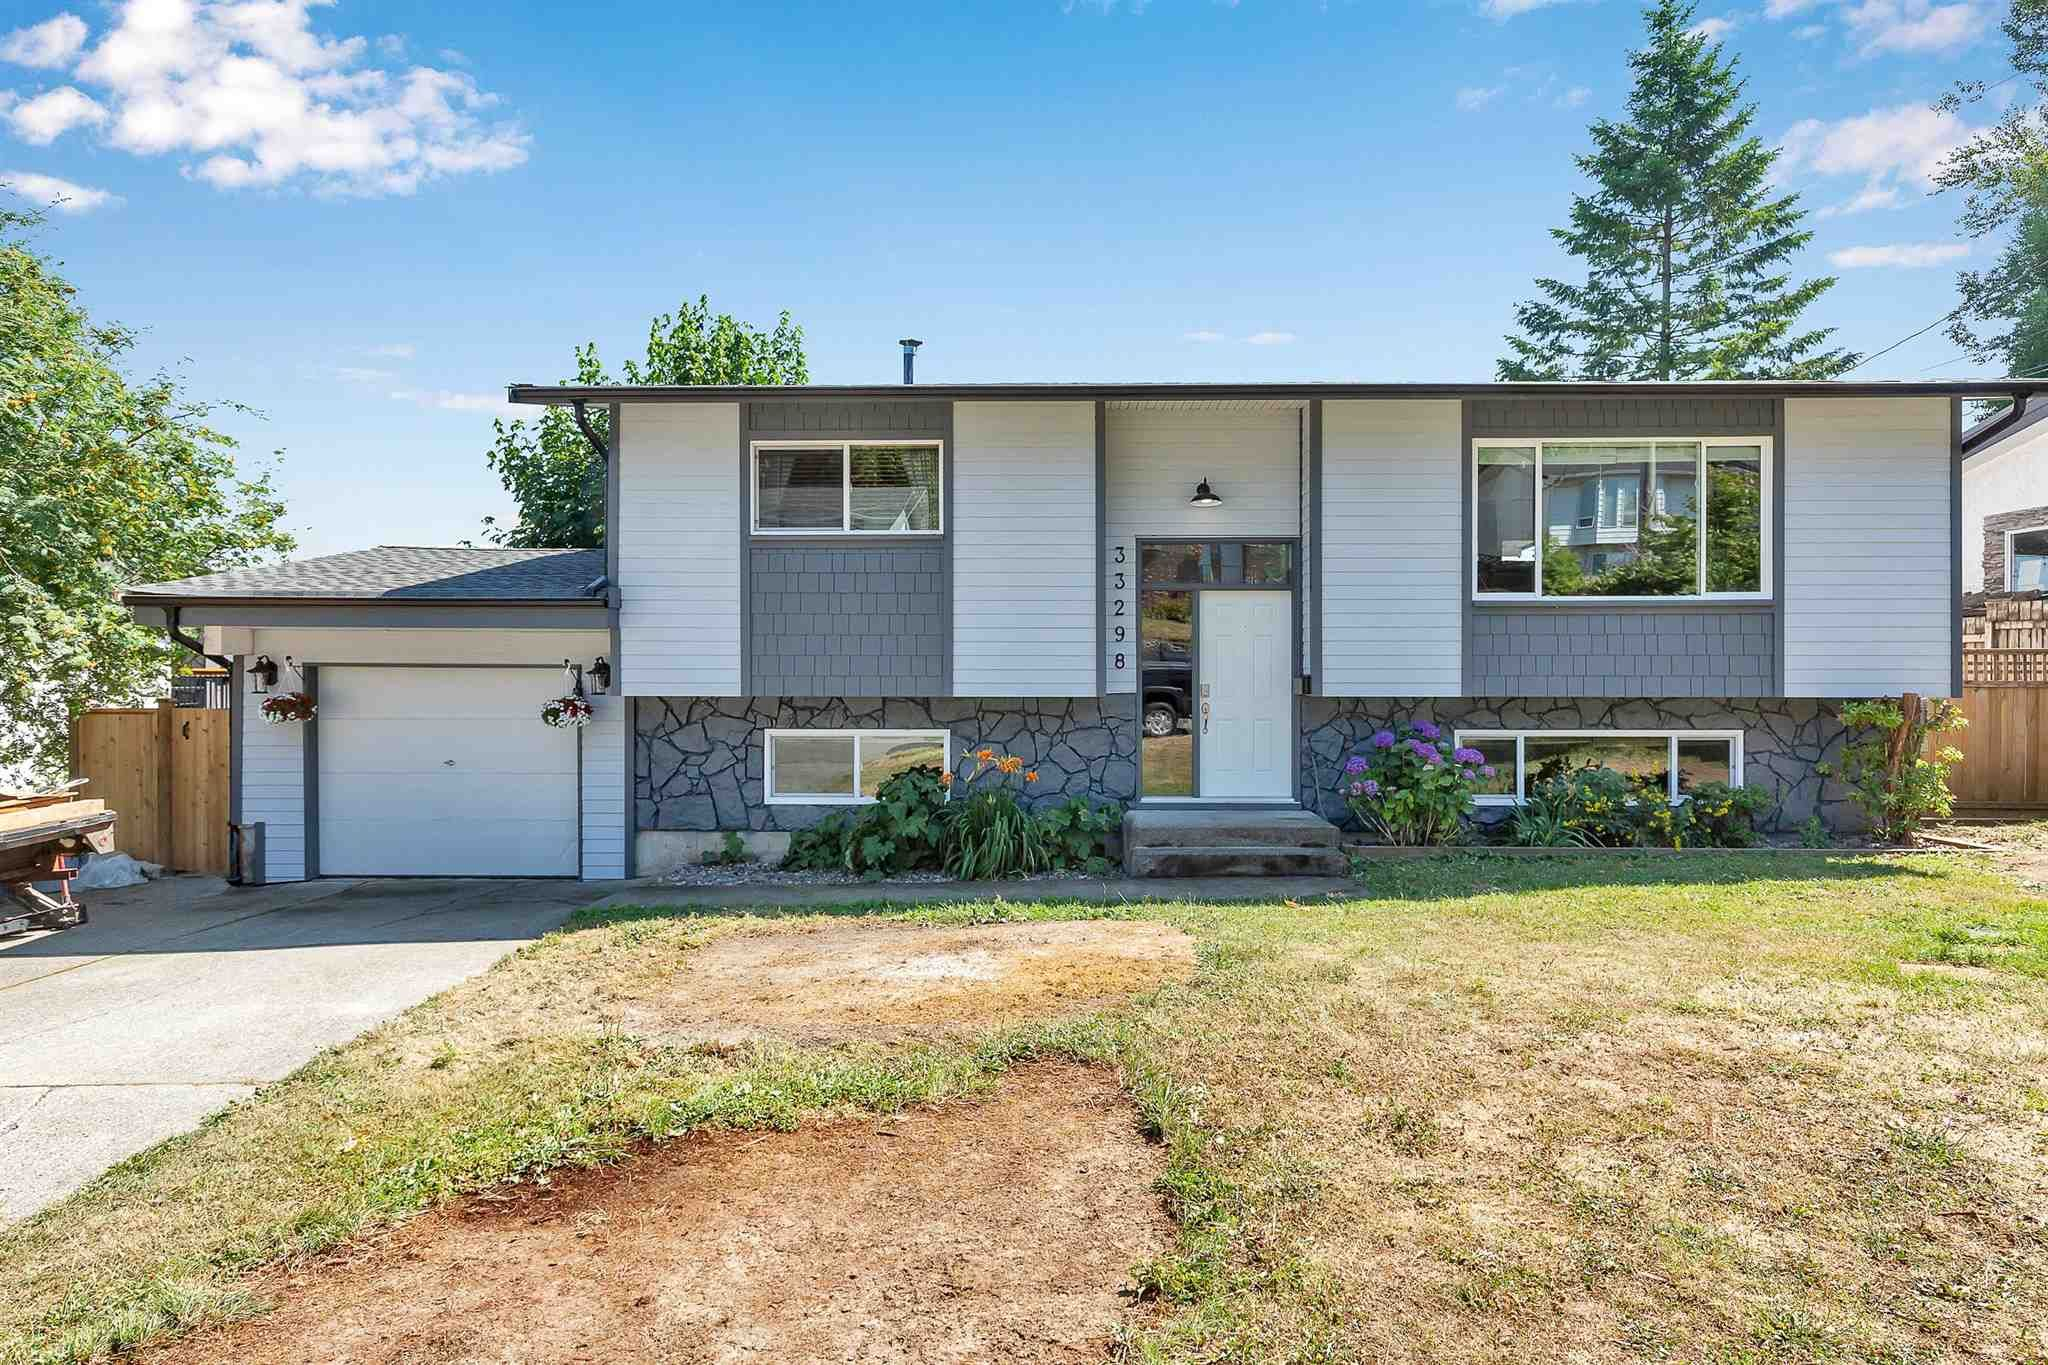 Main Photo: 33298 ROSE Avenue in Mission: Mission BC House for sale : MLS®# R2599616